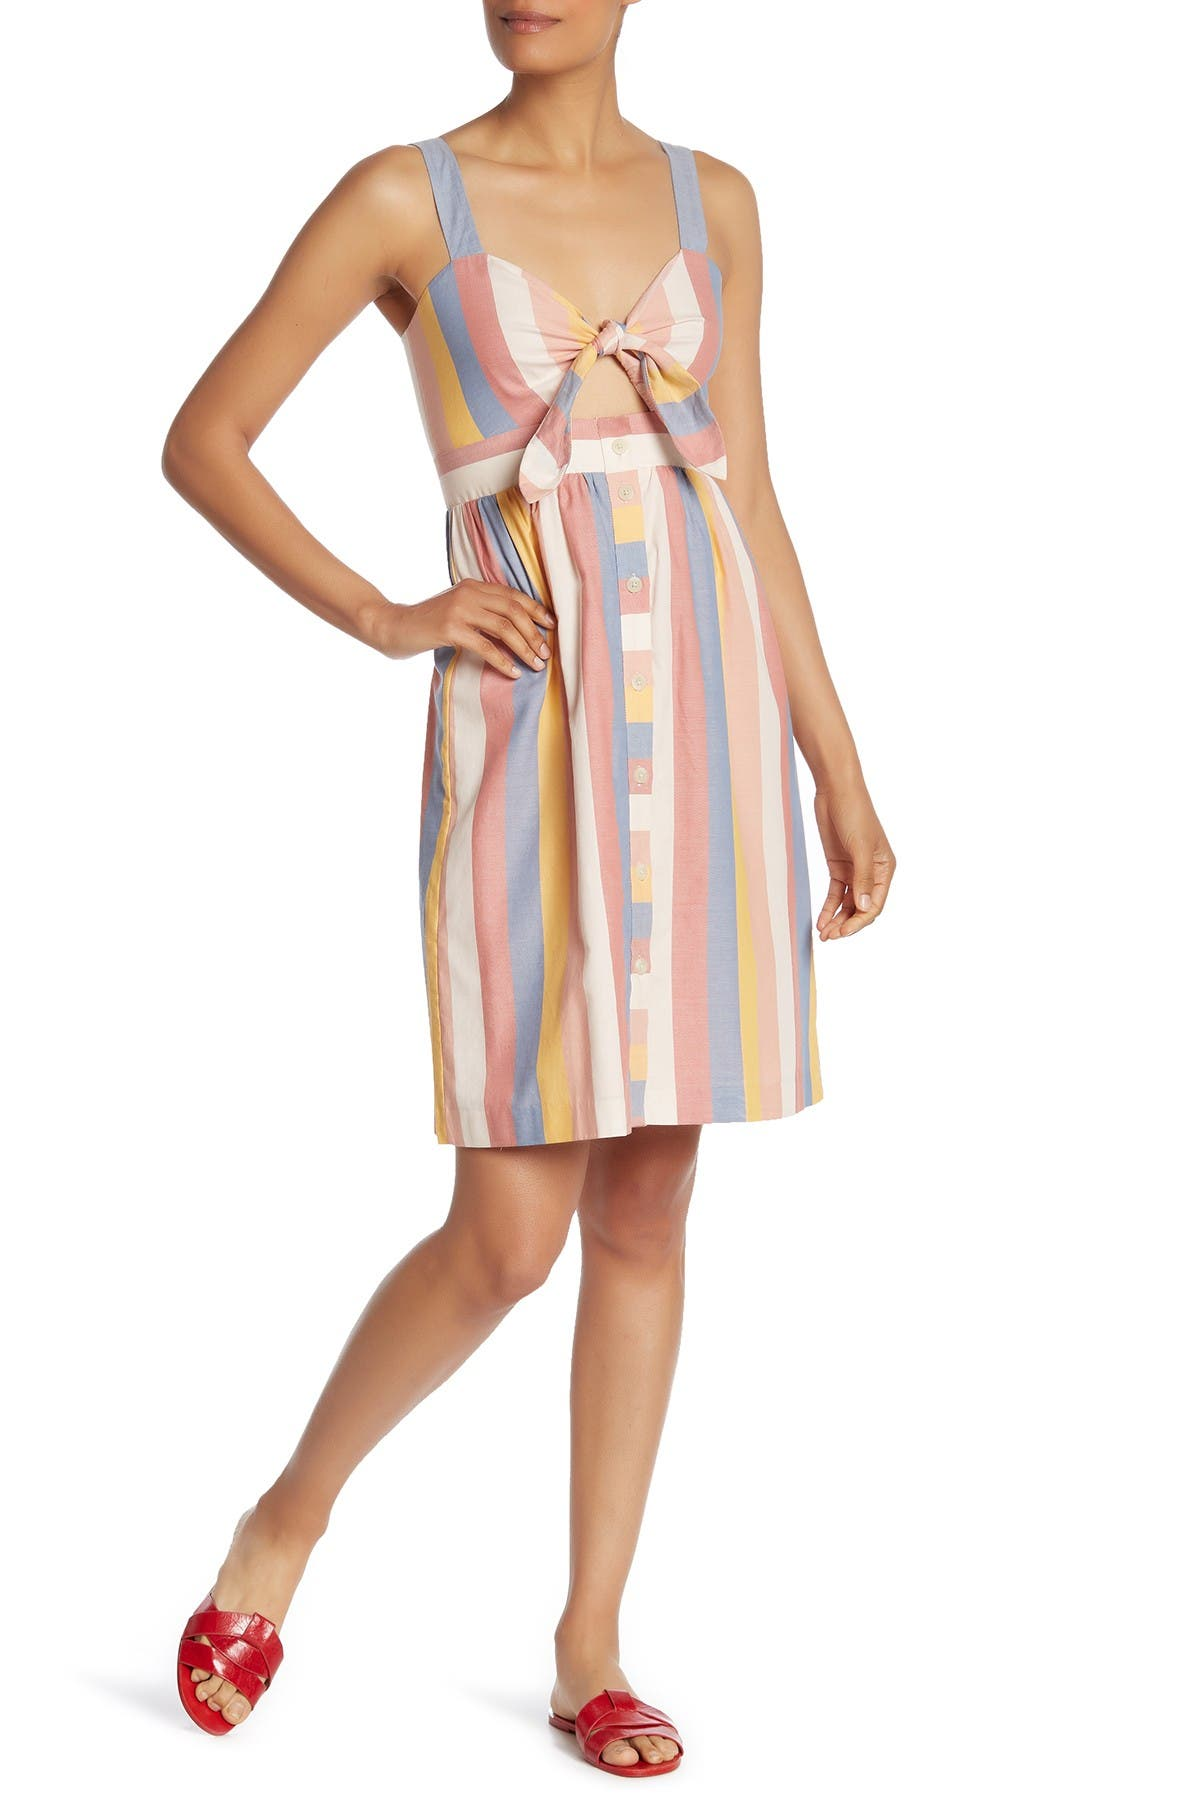 Image of Madewell Striped Tie Front Button Down Midi Dress